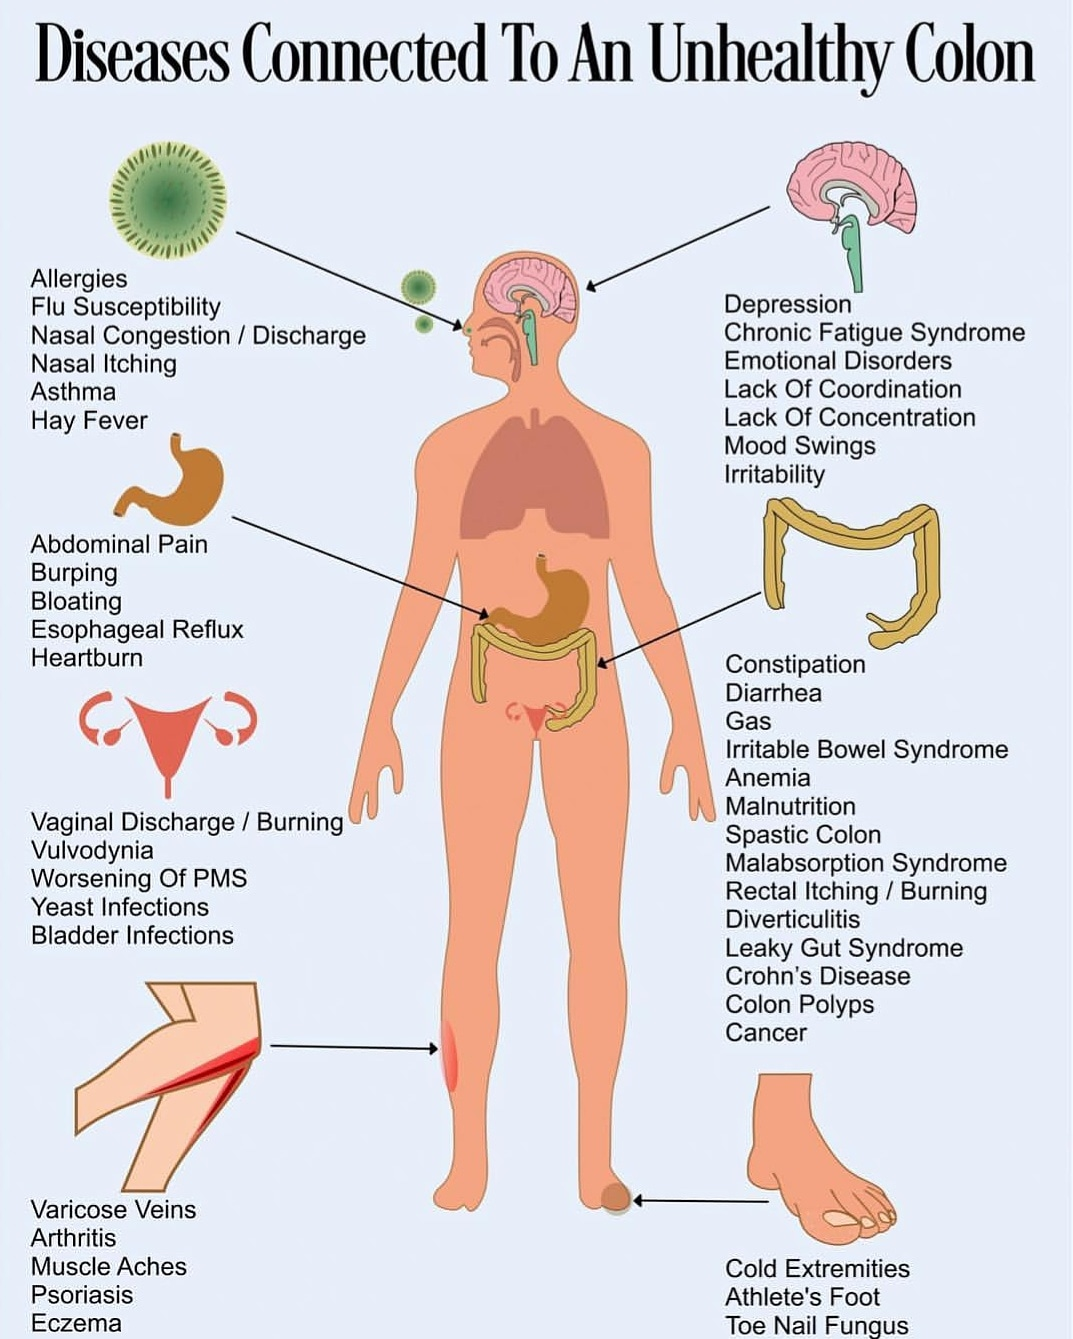 https://healthandbeauty102.com/detoxificationbringshealthygut/